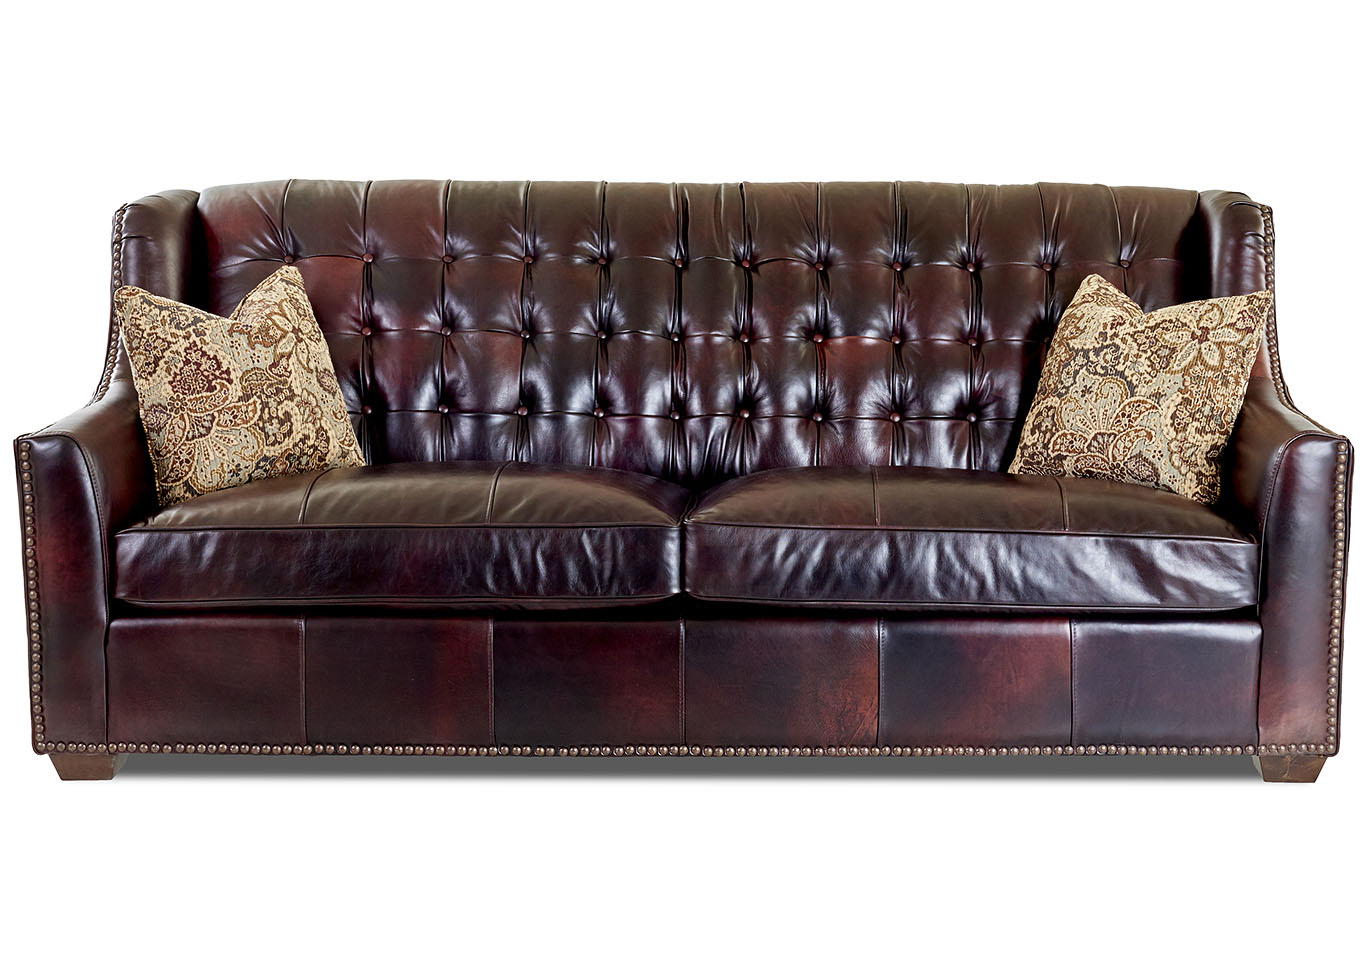 Pennington Chestnut Brown Leather Stationary Sofa,Klaussner Home Furnishings